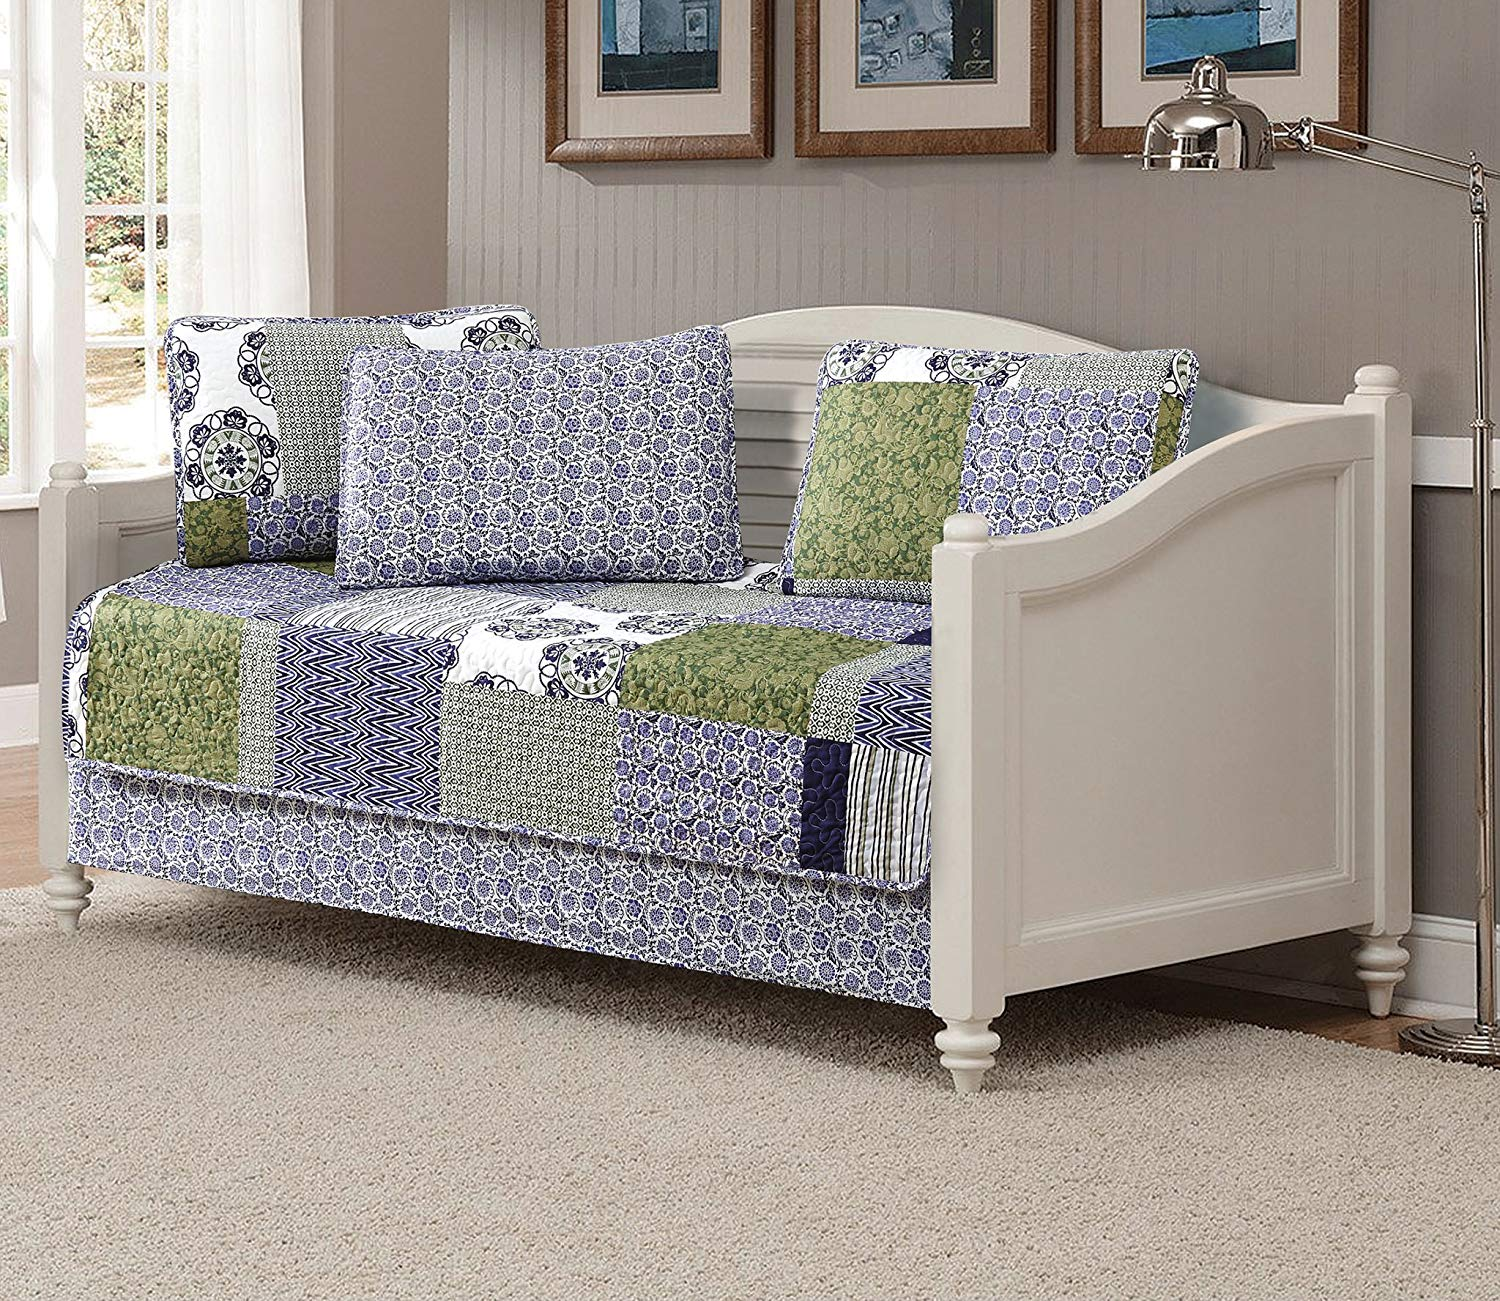 MK Home 5pc Daybed Quilted Coverlet Bedspread Set Patchwork Floral Squares Zig Zag Stripped Purple Green White Navy Blue # Britol